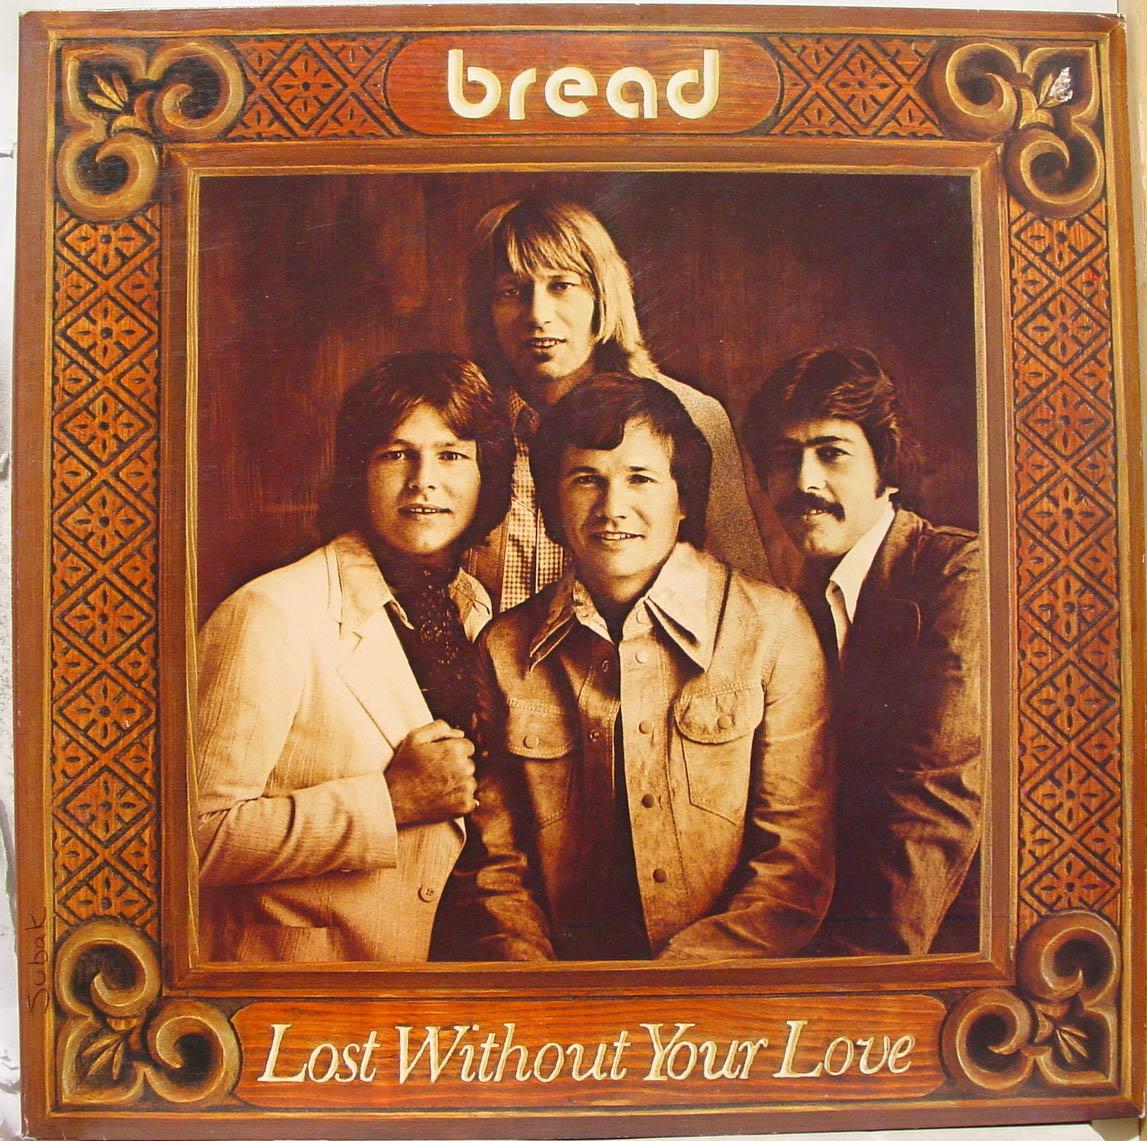 BREAD - Lost Without Your Love Single